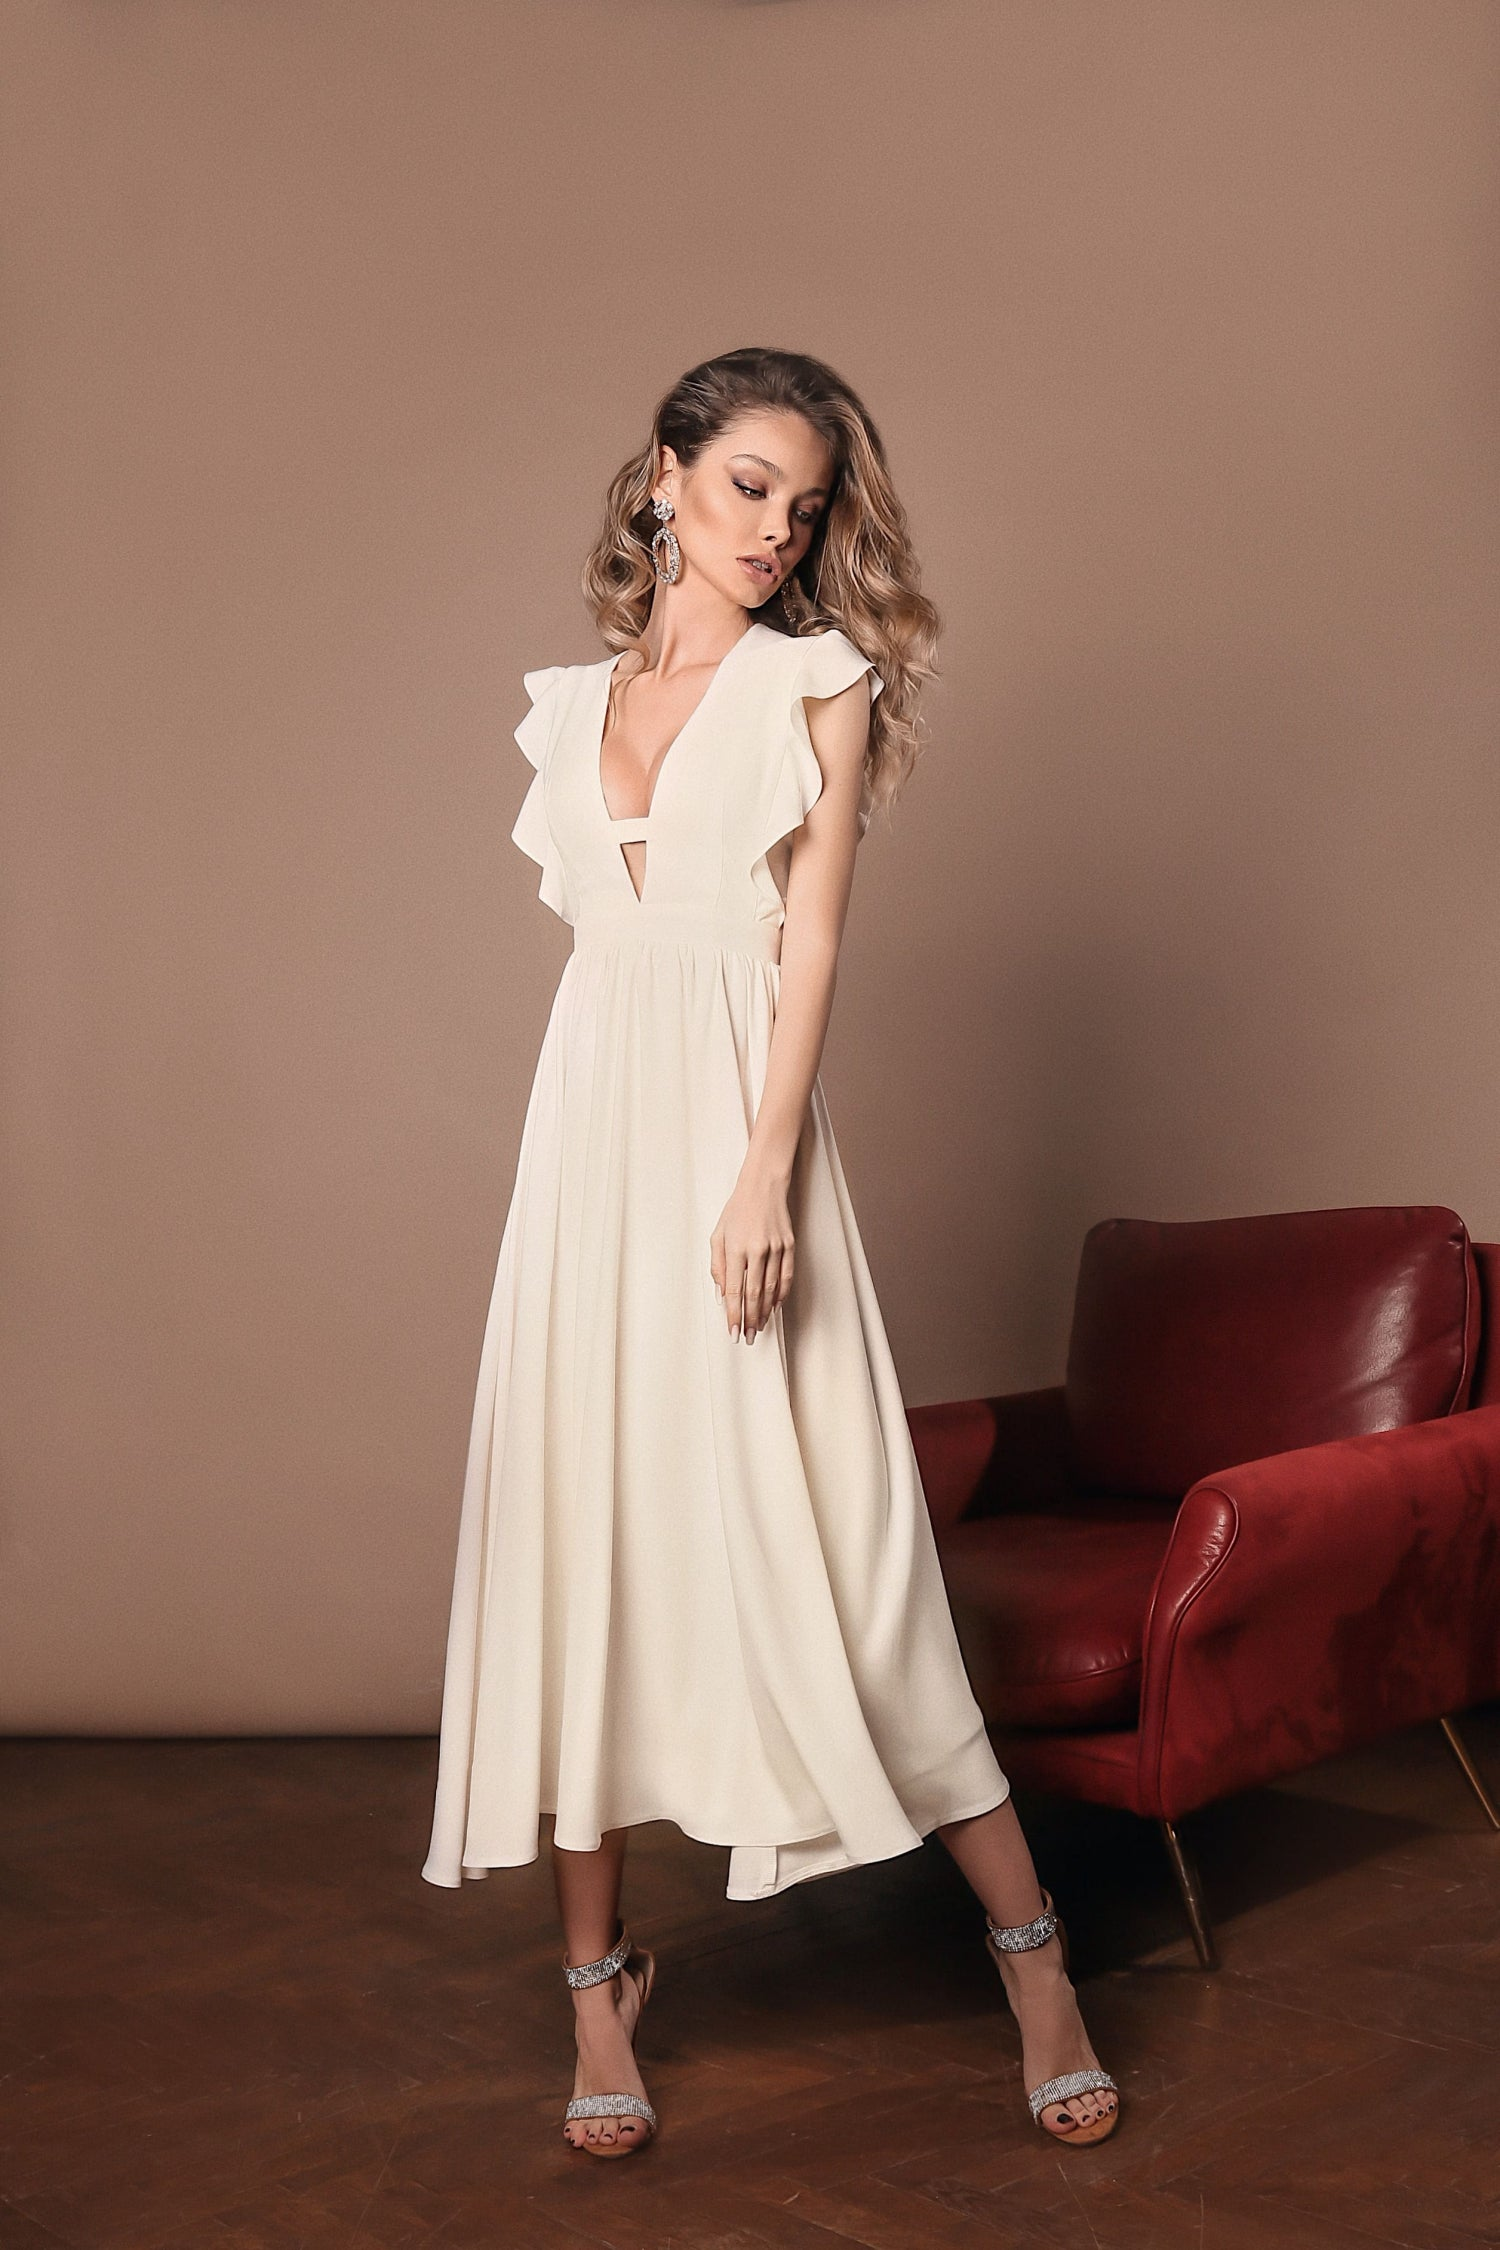 Beige Midi décolletage accent dress